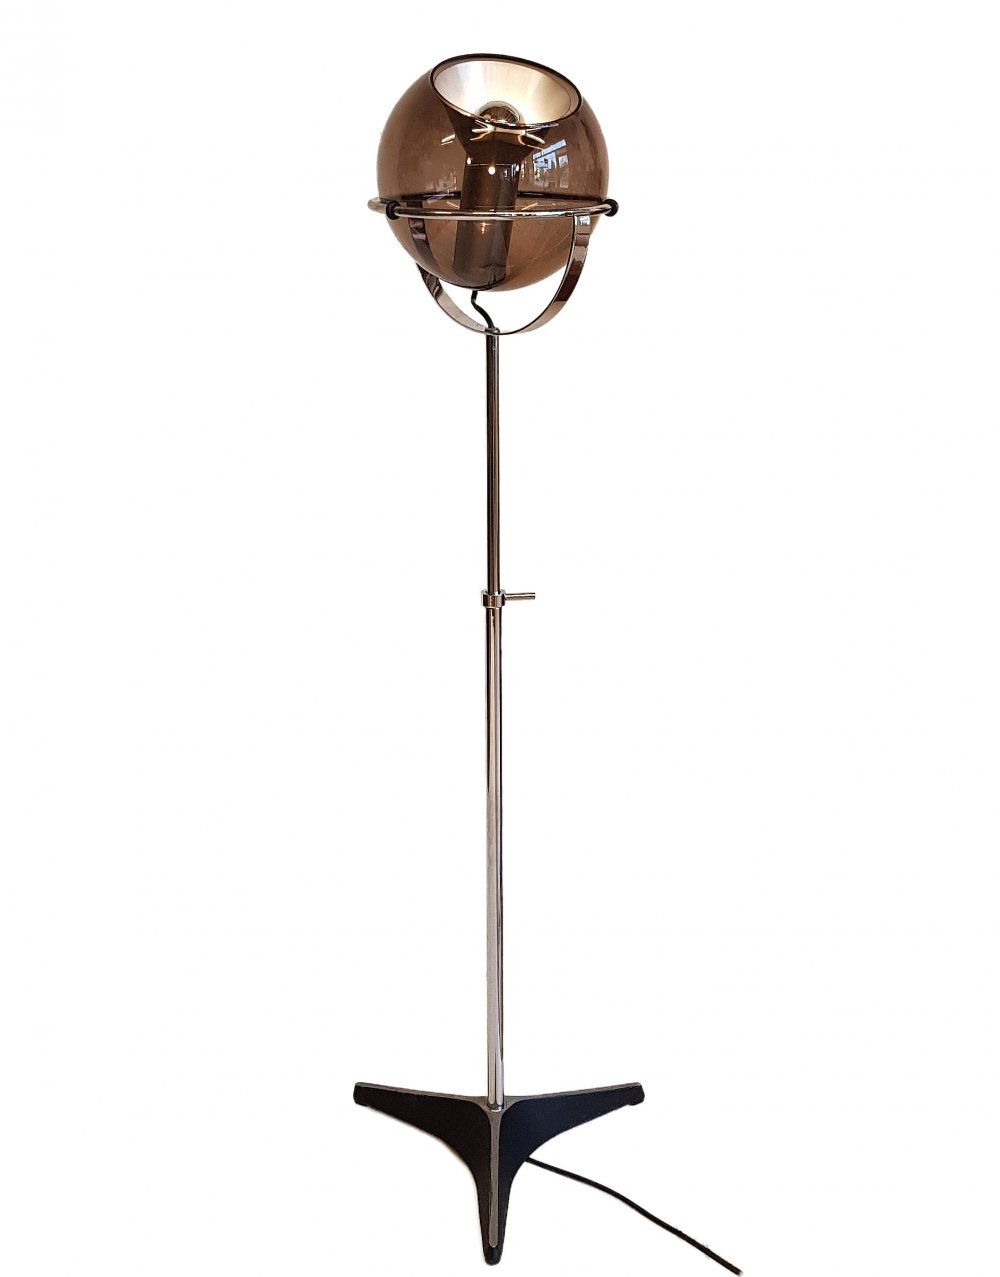 Globe Floor Lamp by Frank Ligtelijn for Raak Amsterdam